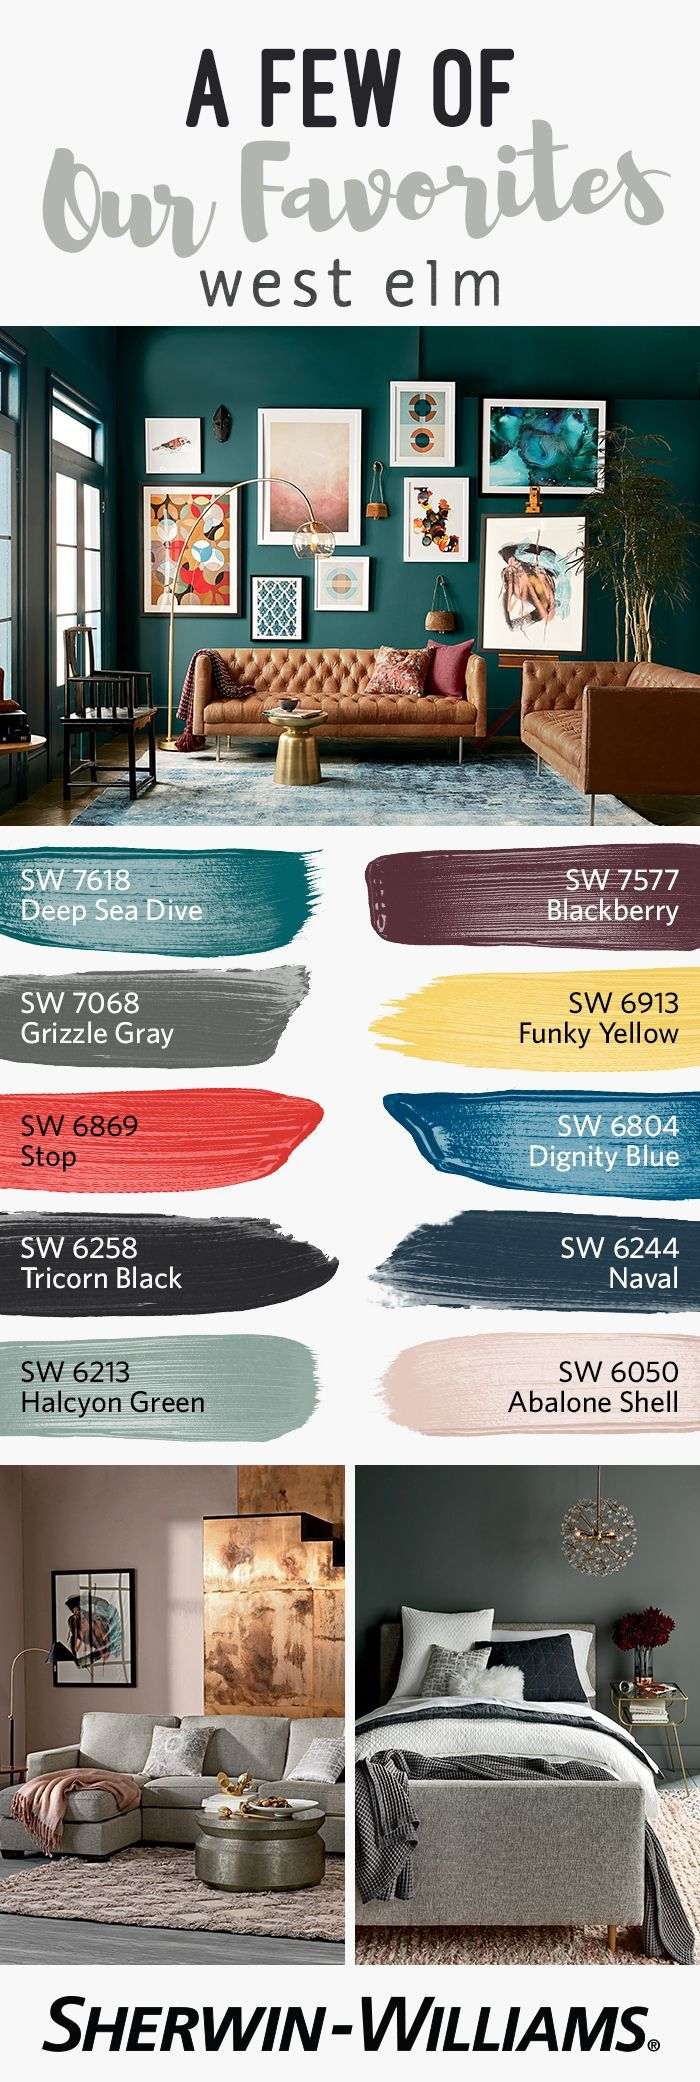 Our Fall/Winter 2016 paint palette from @westelm is a refreshingly crisp take on seasonal colors that is sure to inspire. This versatile palette makes it easy for you to coordinate with the latest collections of furniture, bedding and home decor. Pick an elegant neutral like Grizzle Gray SW 7068 or Abalone Shell SW 6050, then add bold accents throughout your home with statement colors like Stop SW 6869, Funky Yellow SW 6913 or Dignity Blue 6804.